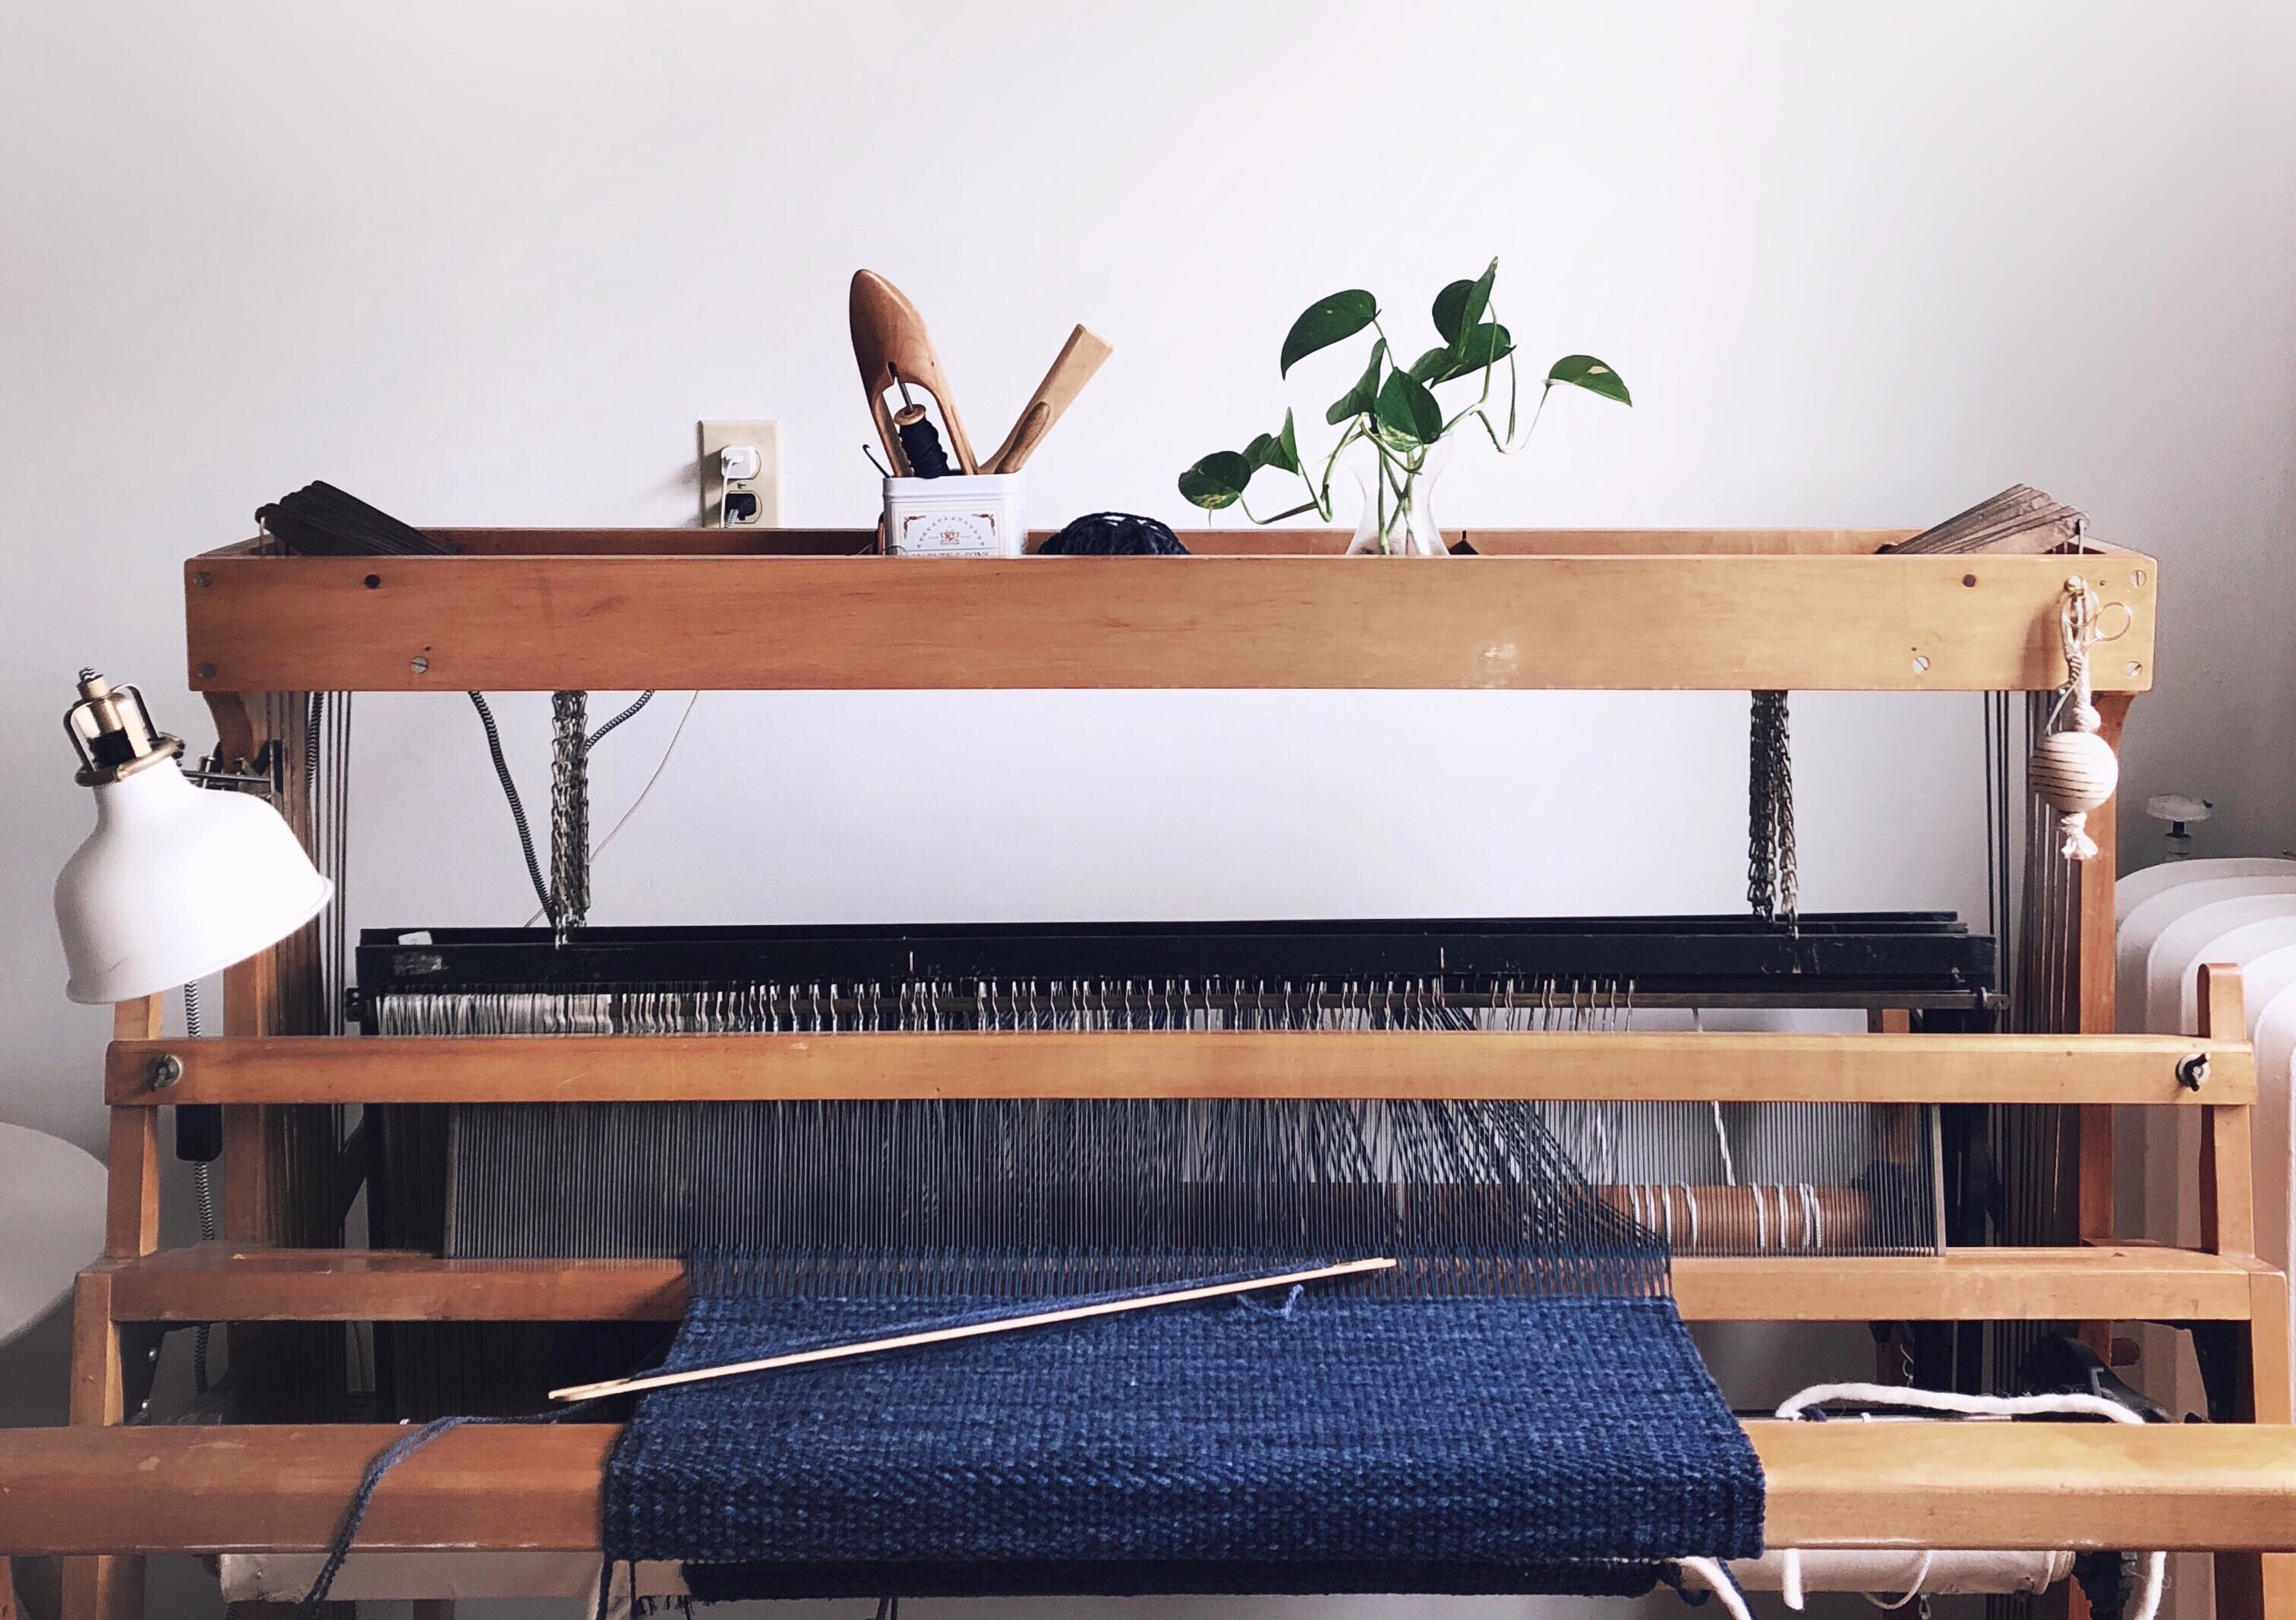 Free Pattern Color and Weave Tea Towels on a Rigid Heddle Loom